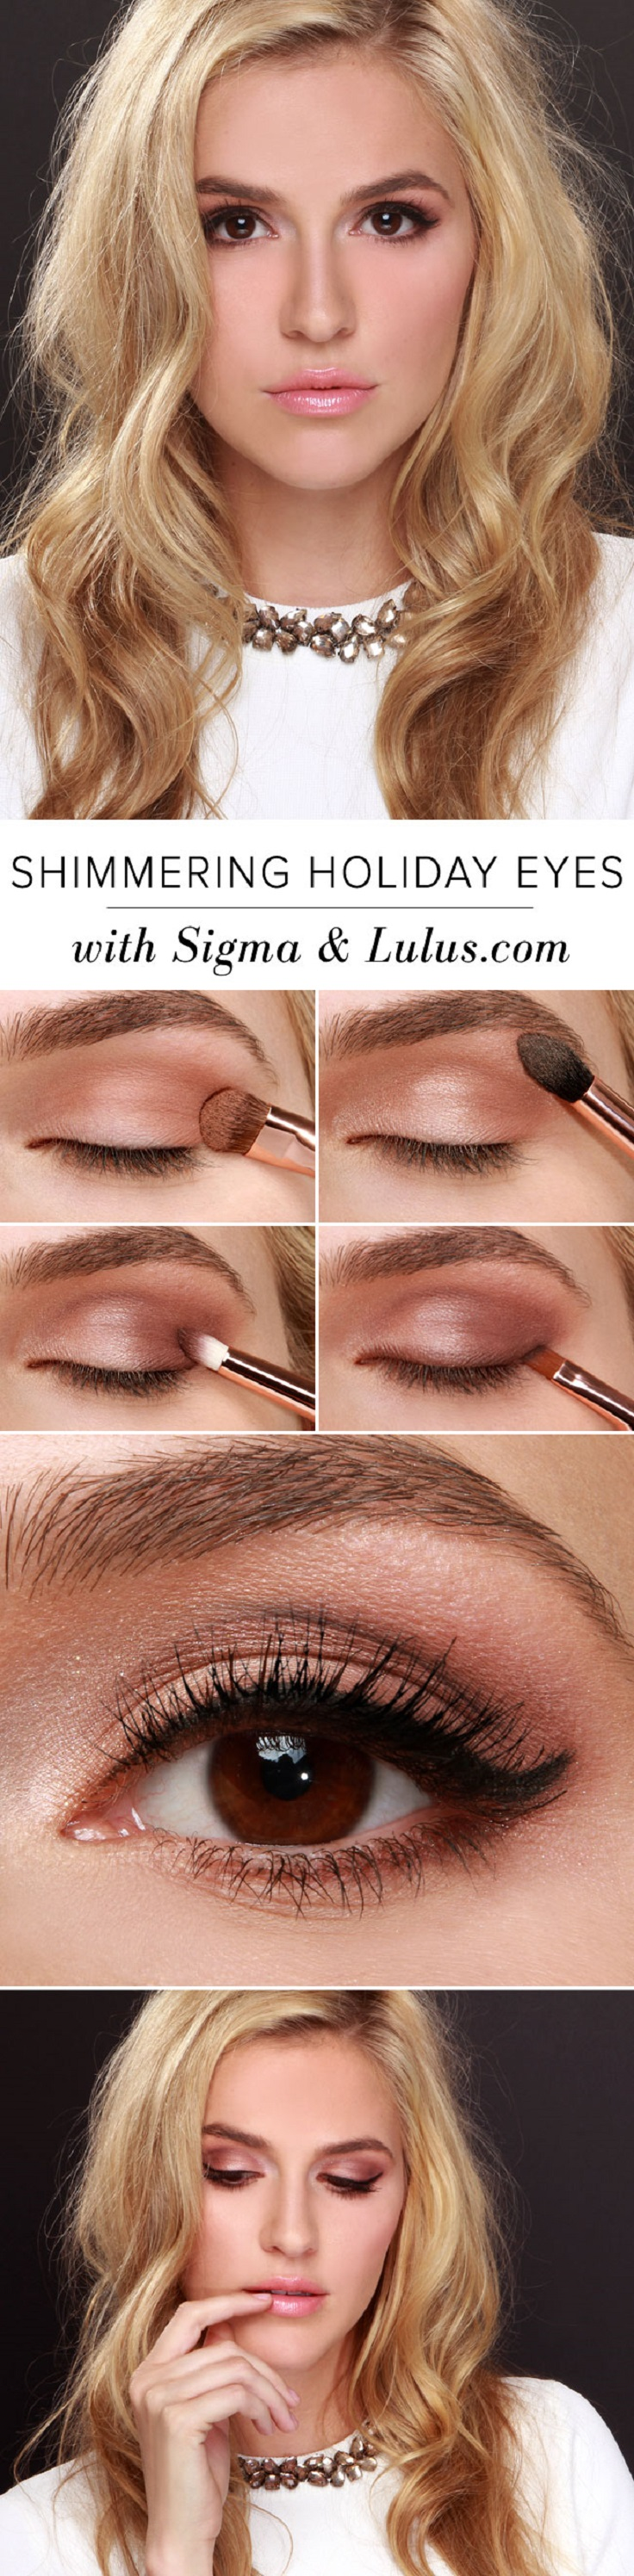 simmering-neutral-eyes